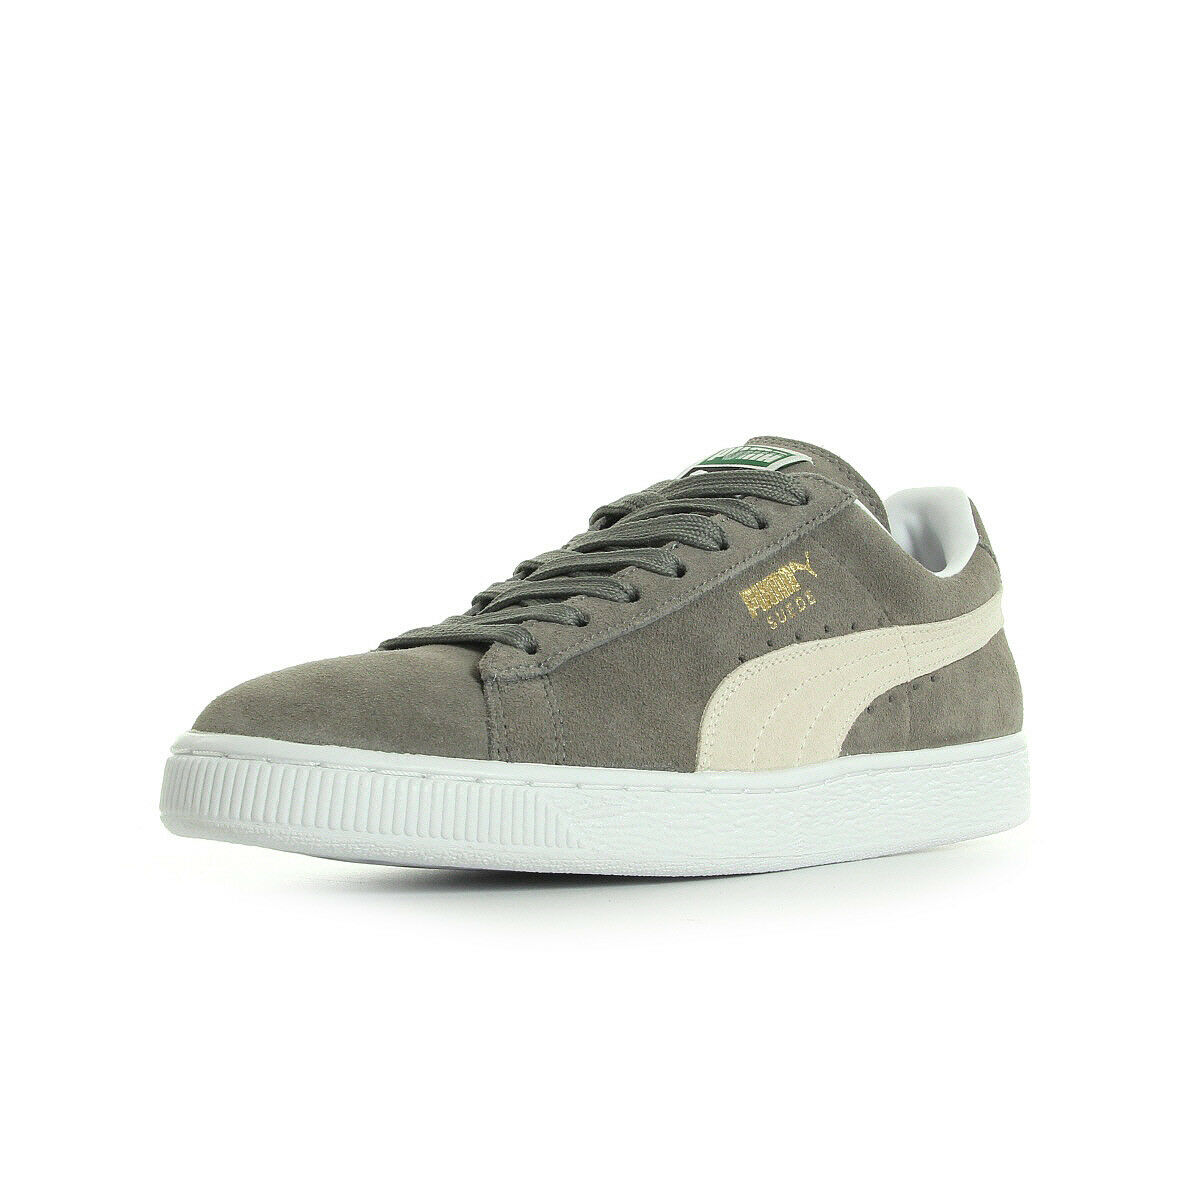 Chaussures Baskets Puma femme Suede Classic + Steeple Gris Blanc taille Gris